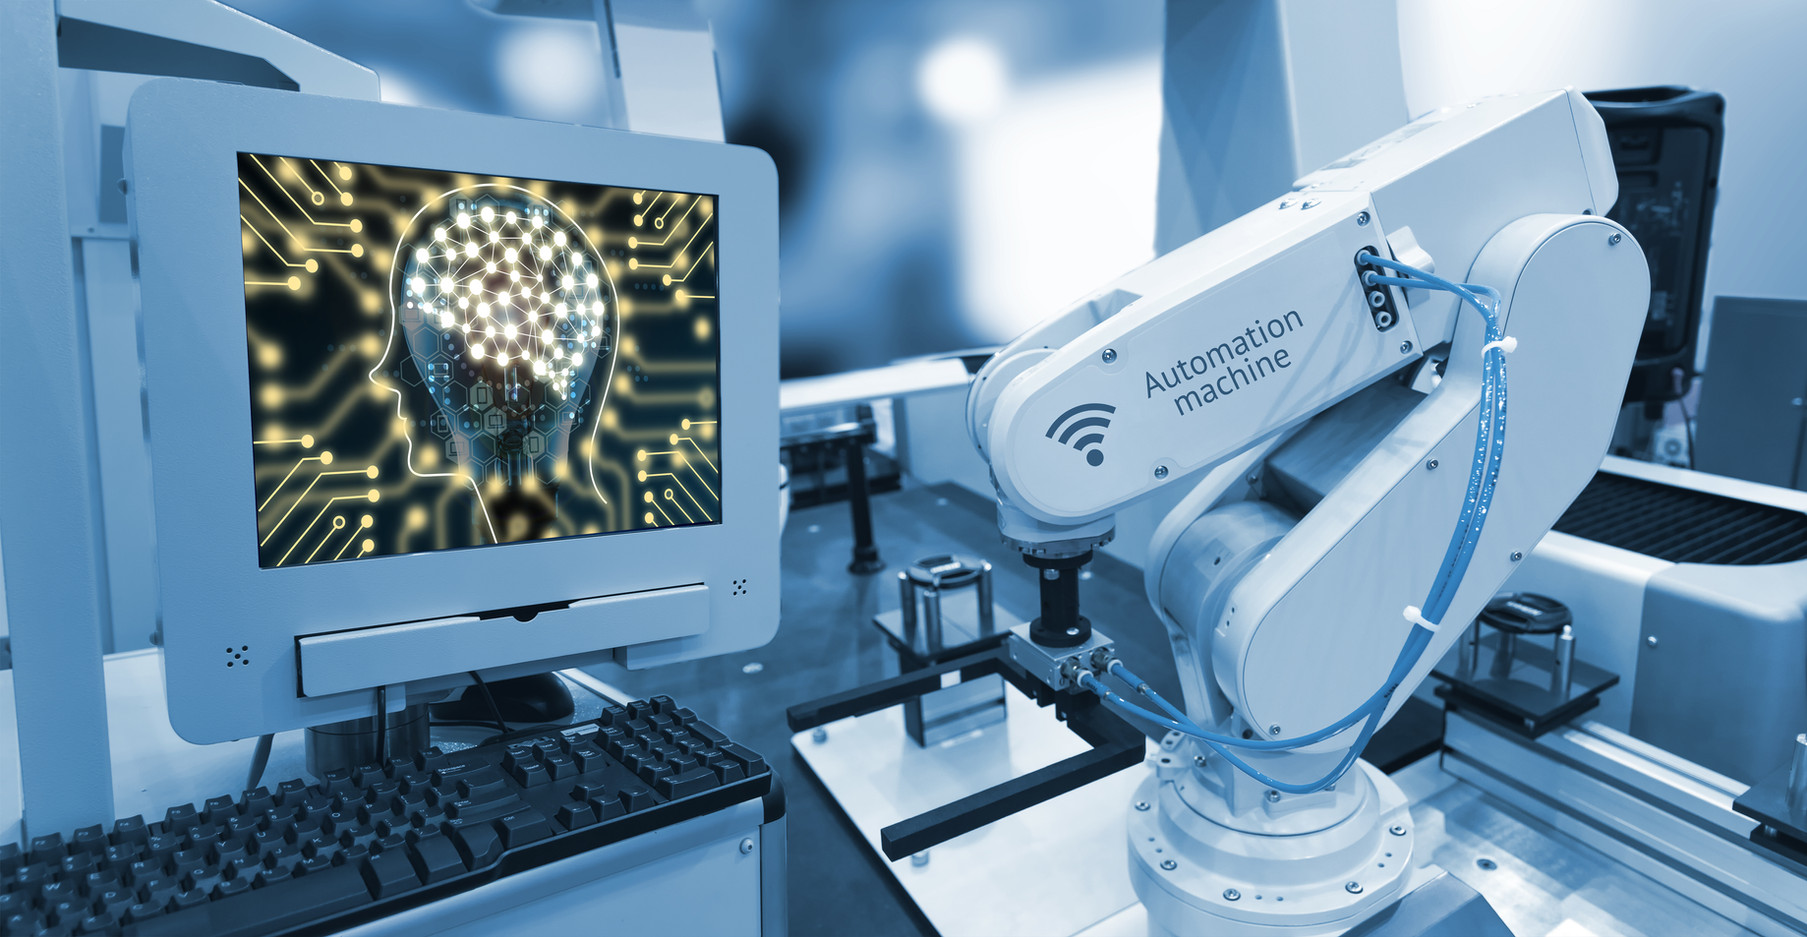 ROBOTICS AND OPTICAL CHARACTER RECOGNITION